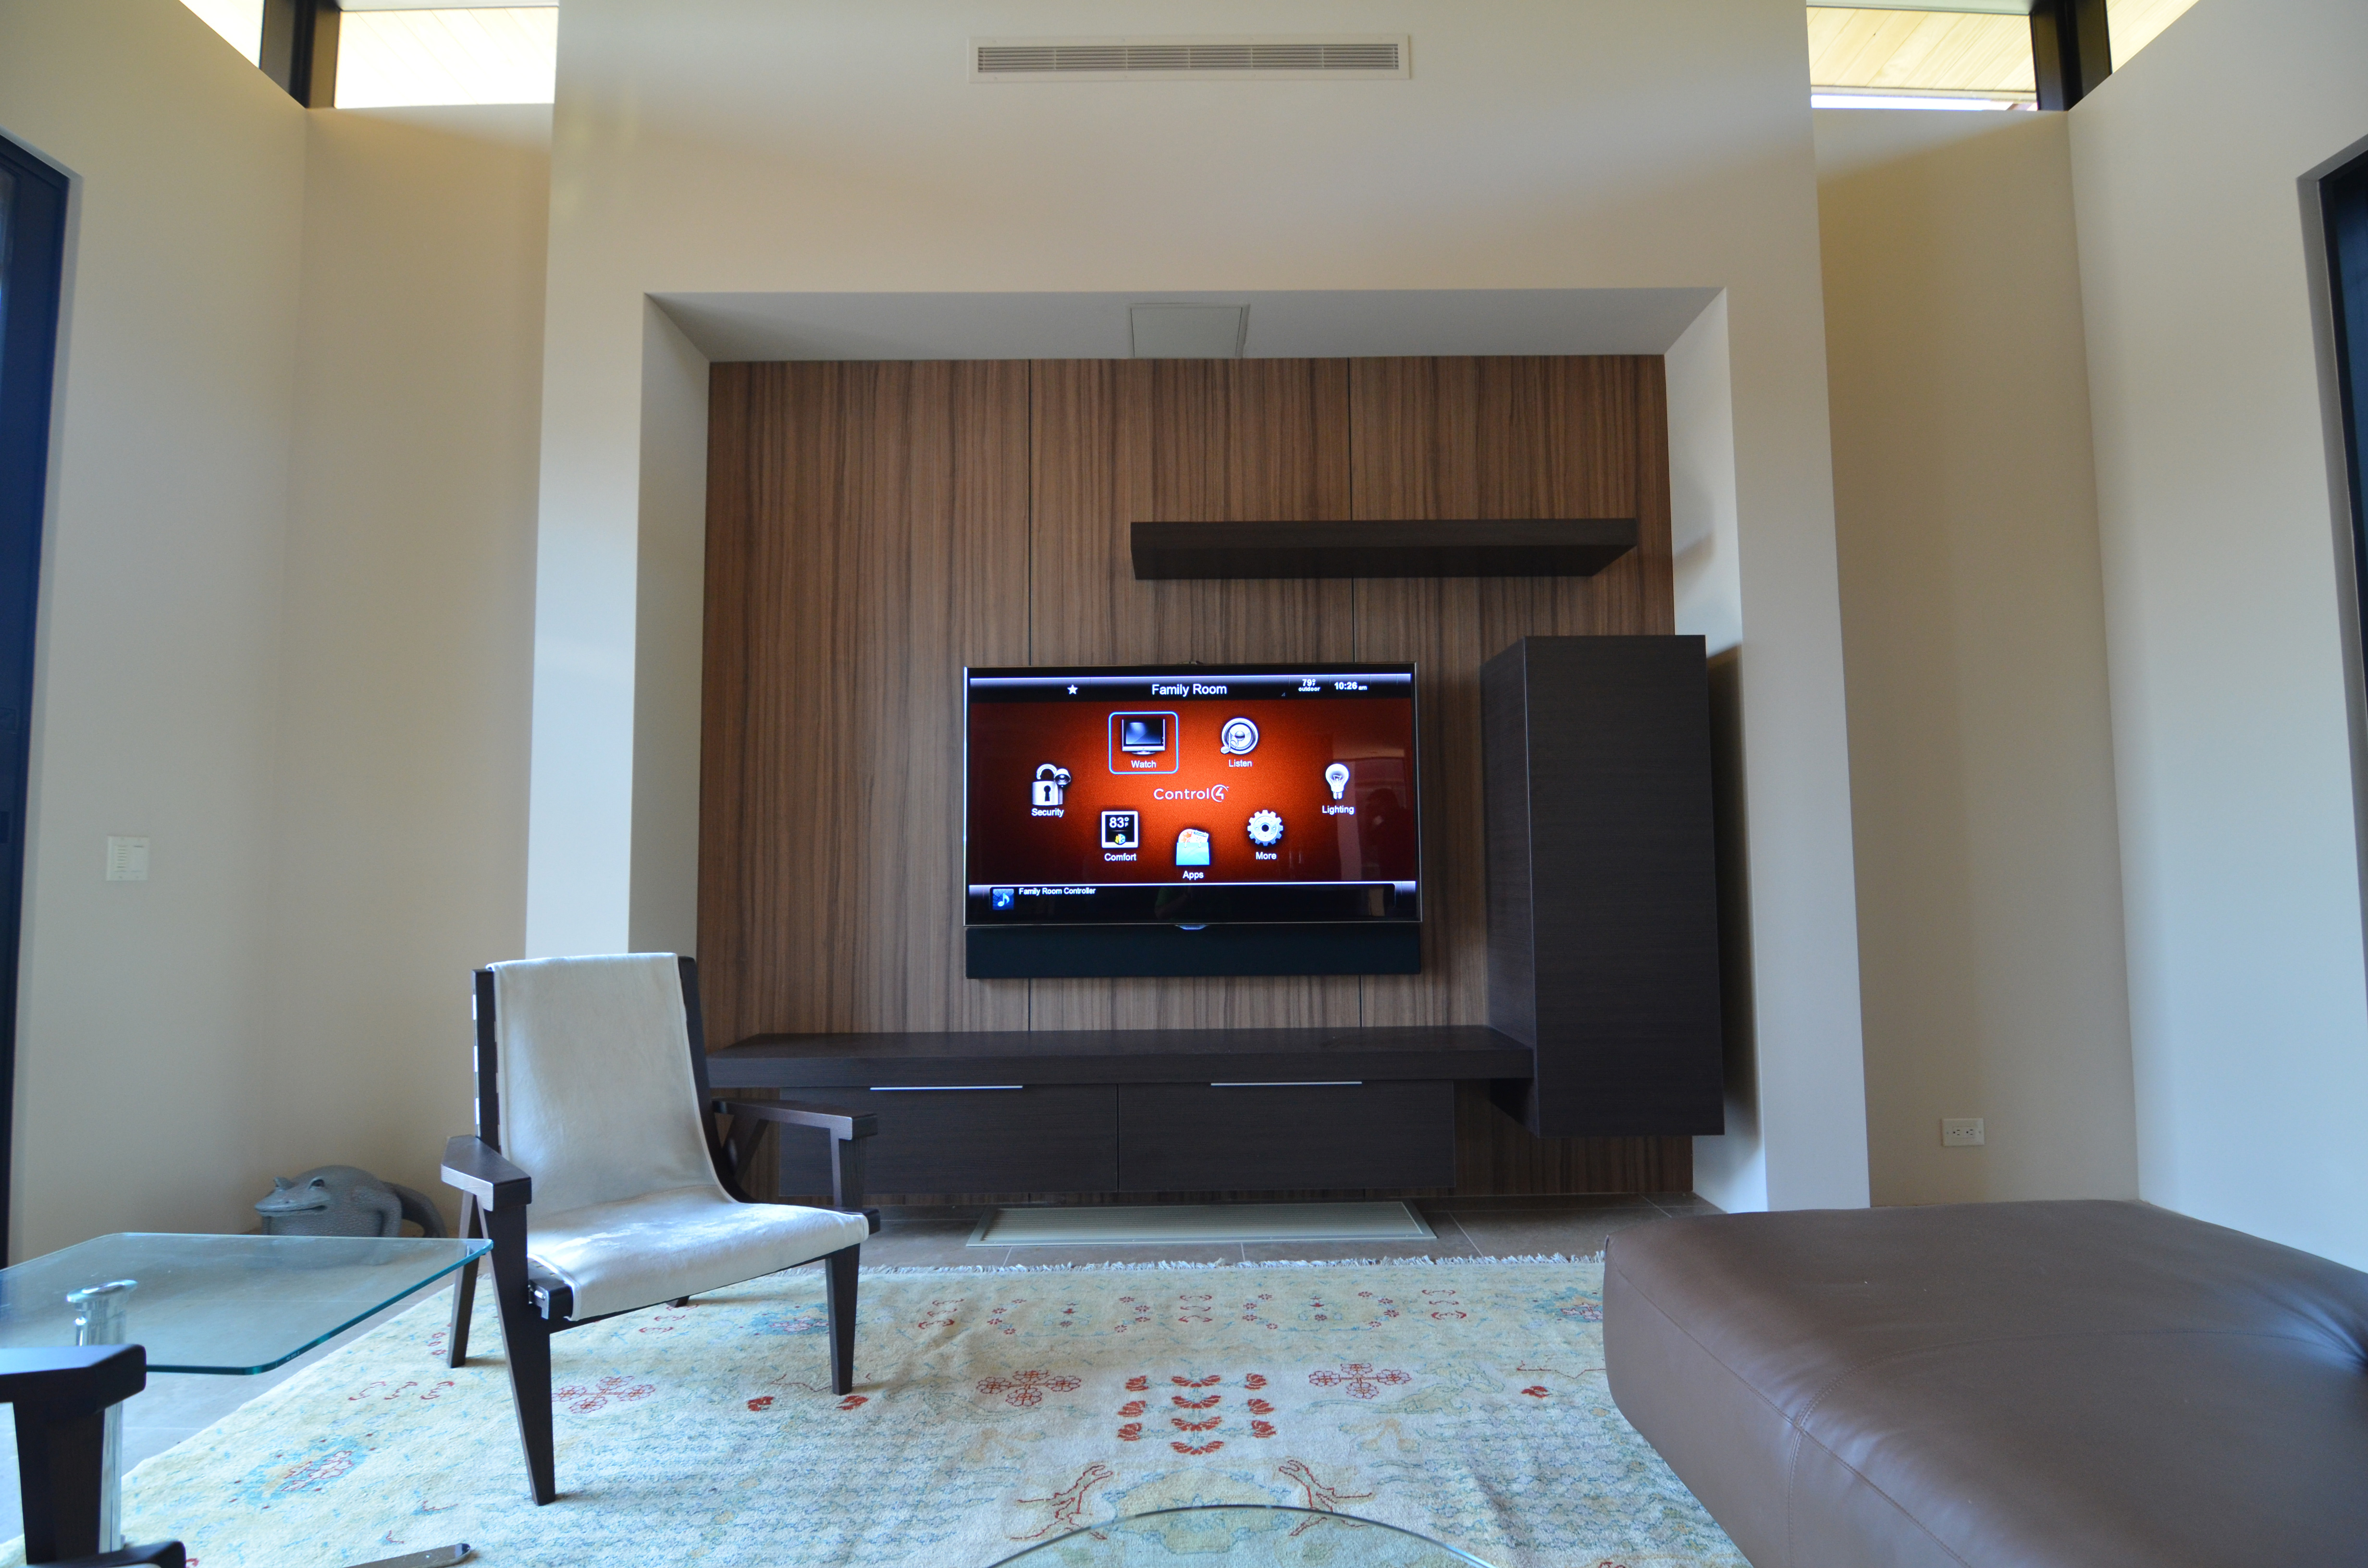 Hanging TV displaying Control4